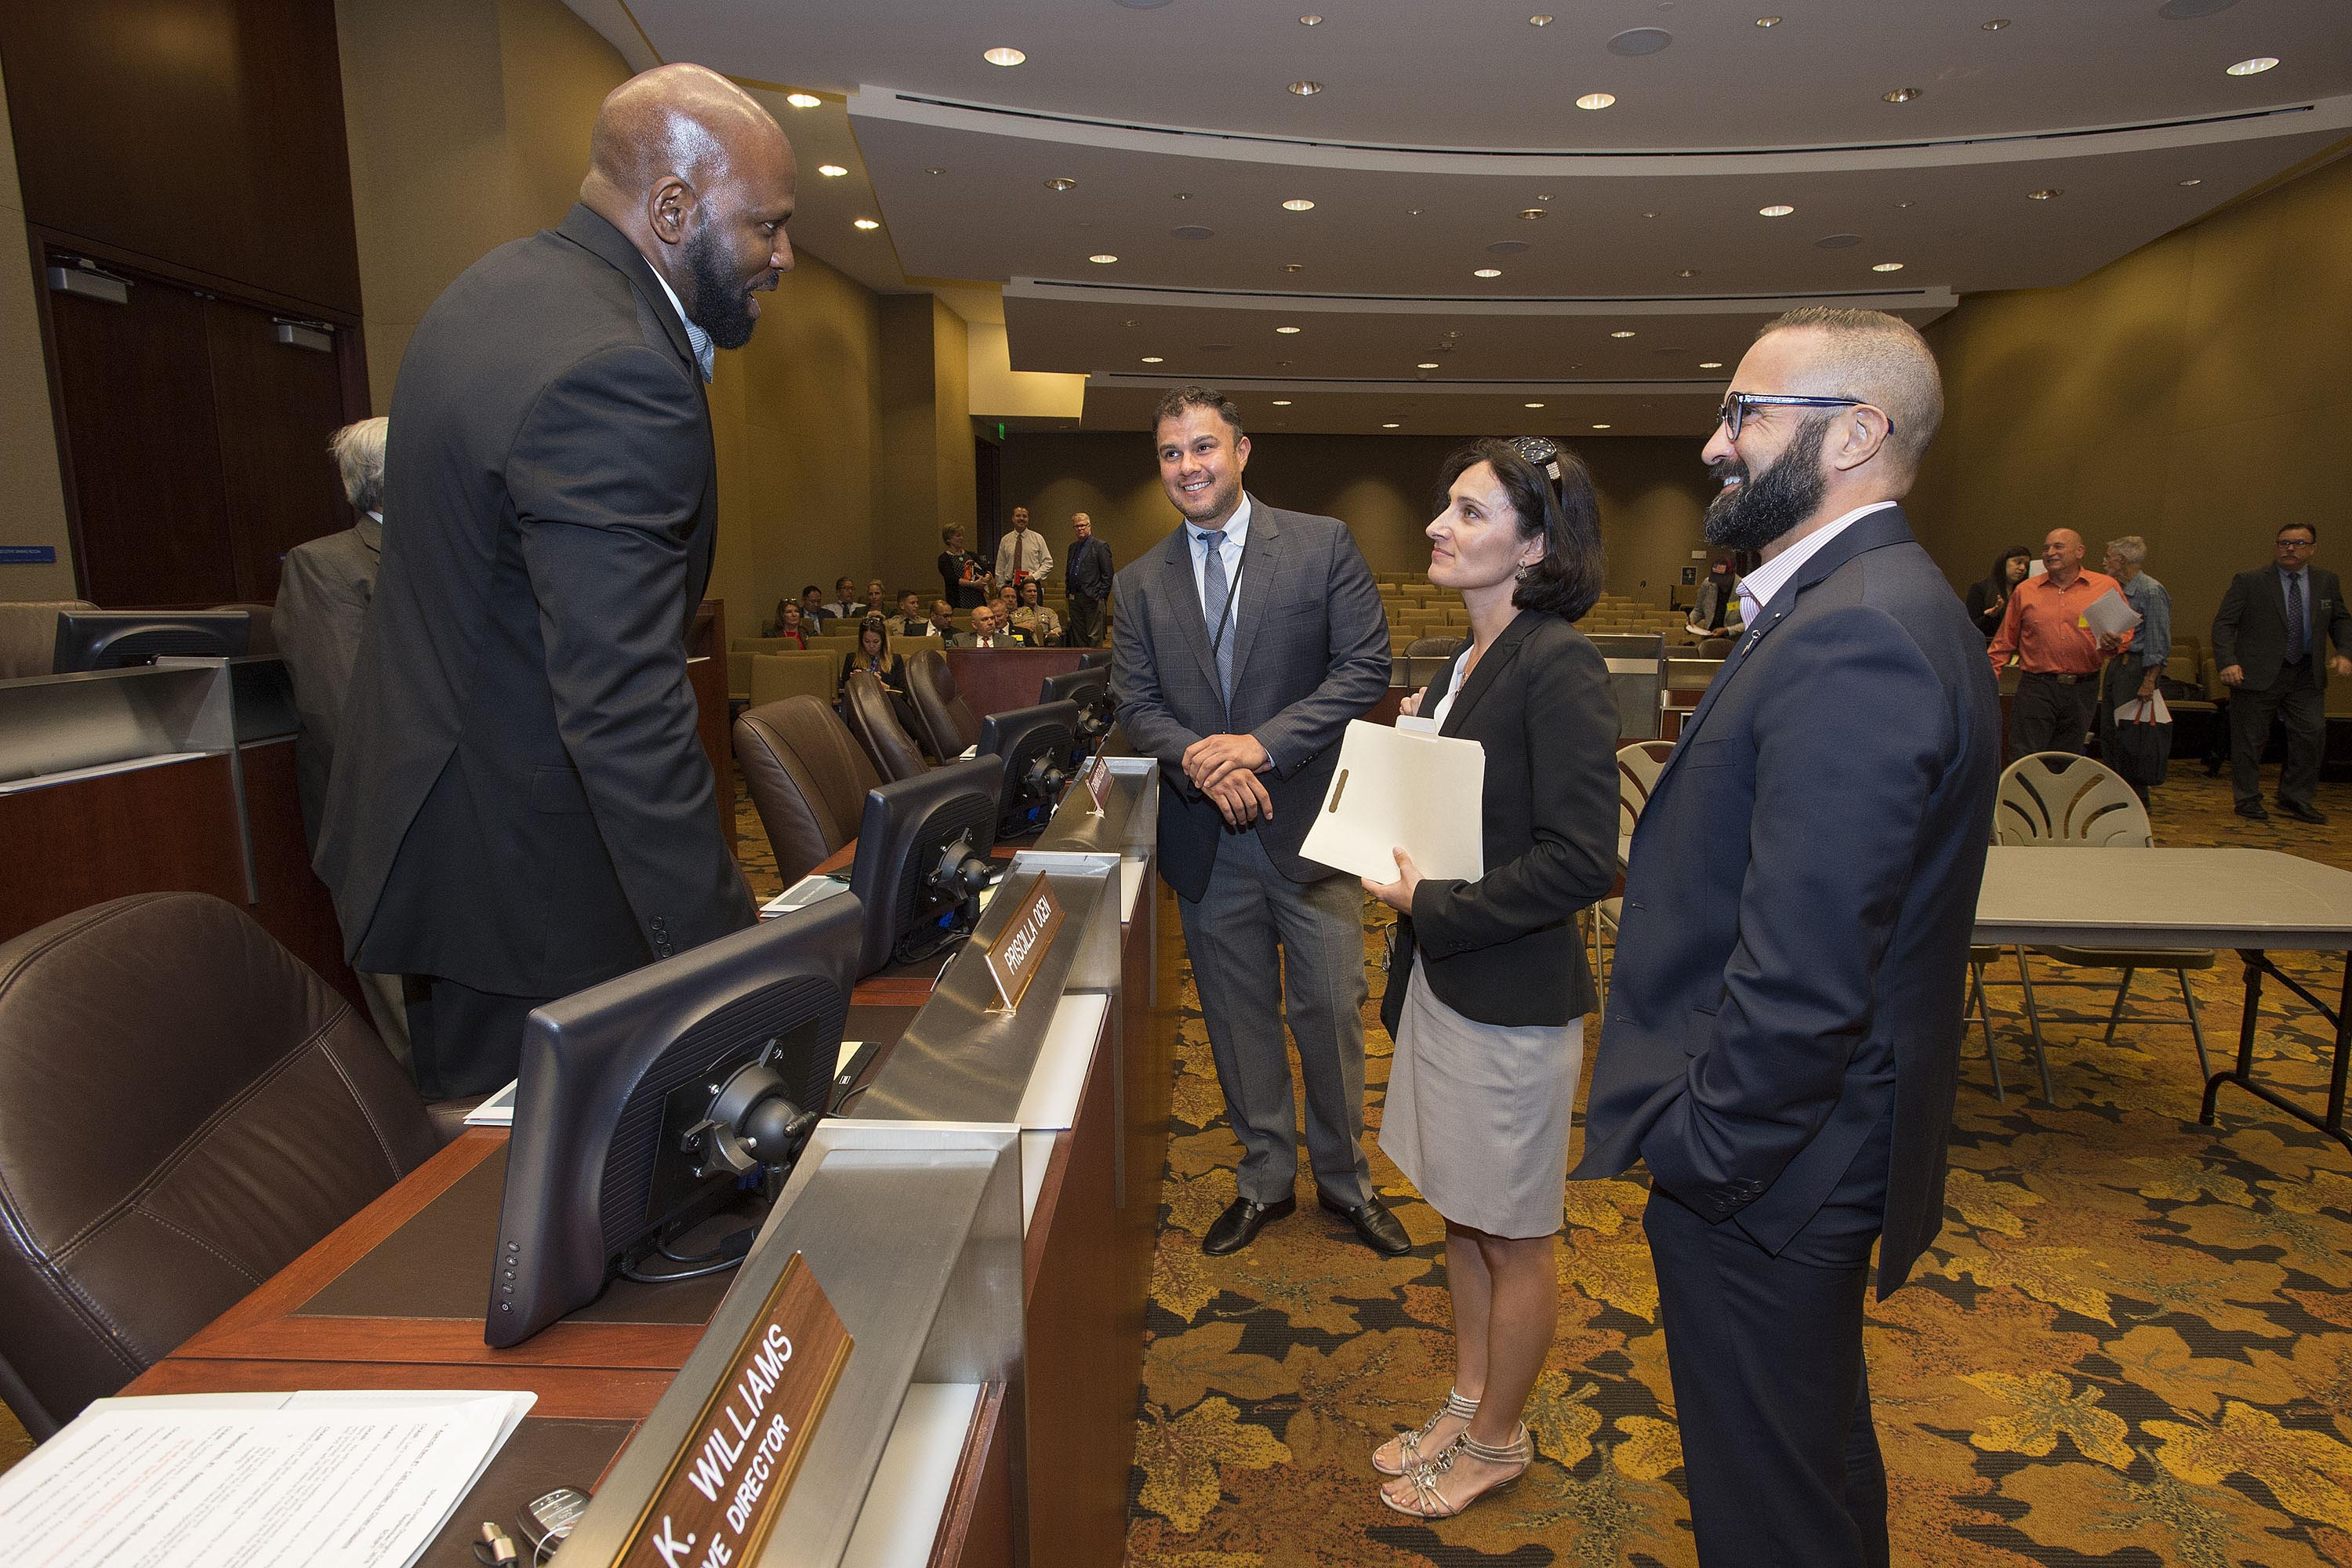 Sheriff Civilian Oversight Commission<br> <b>Sept. 27, 2018 – Meeting</b><br> <i>Photo by Diandra Jay / Board of Supervisors</i>